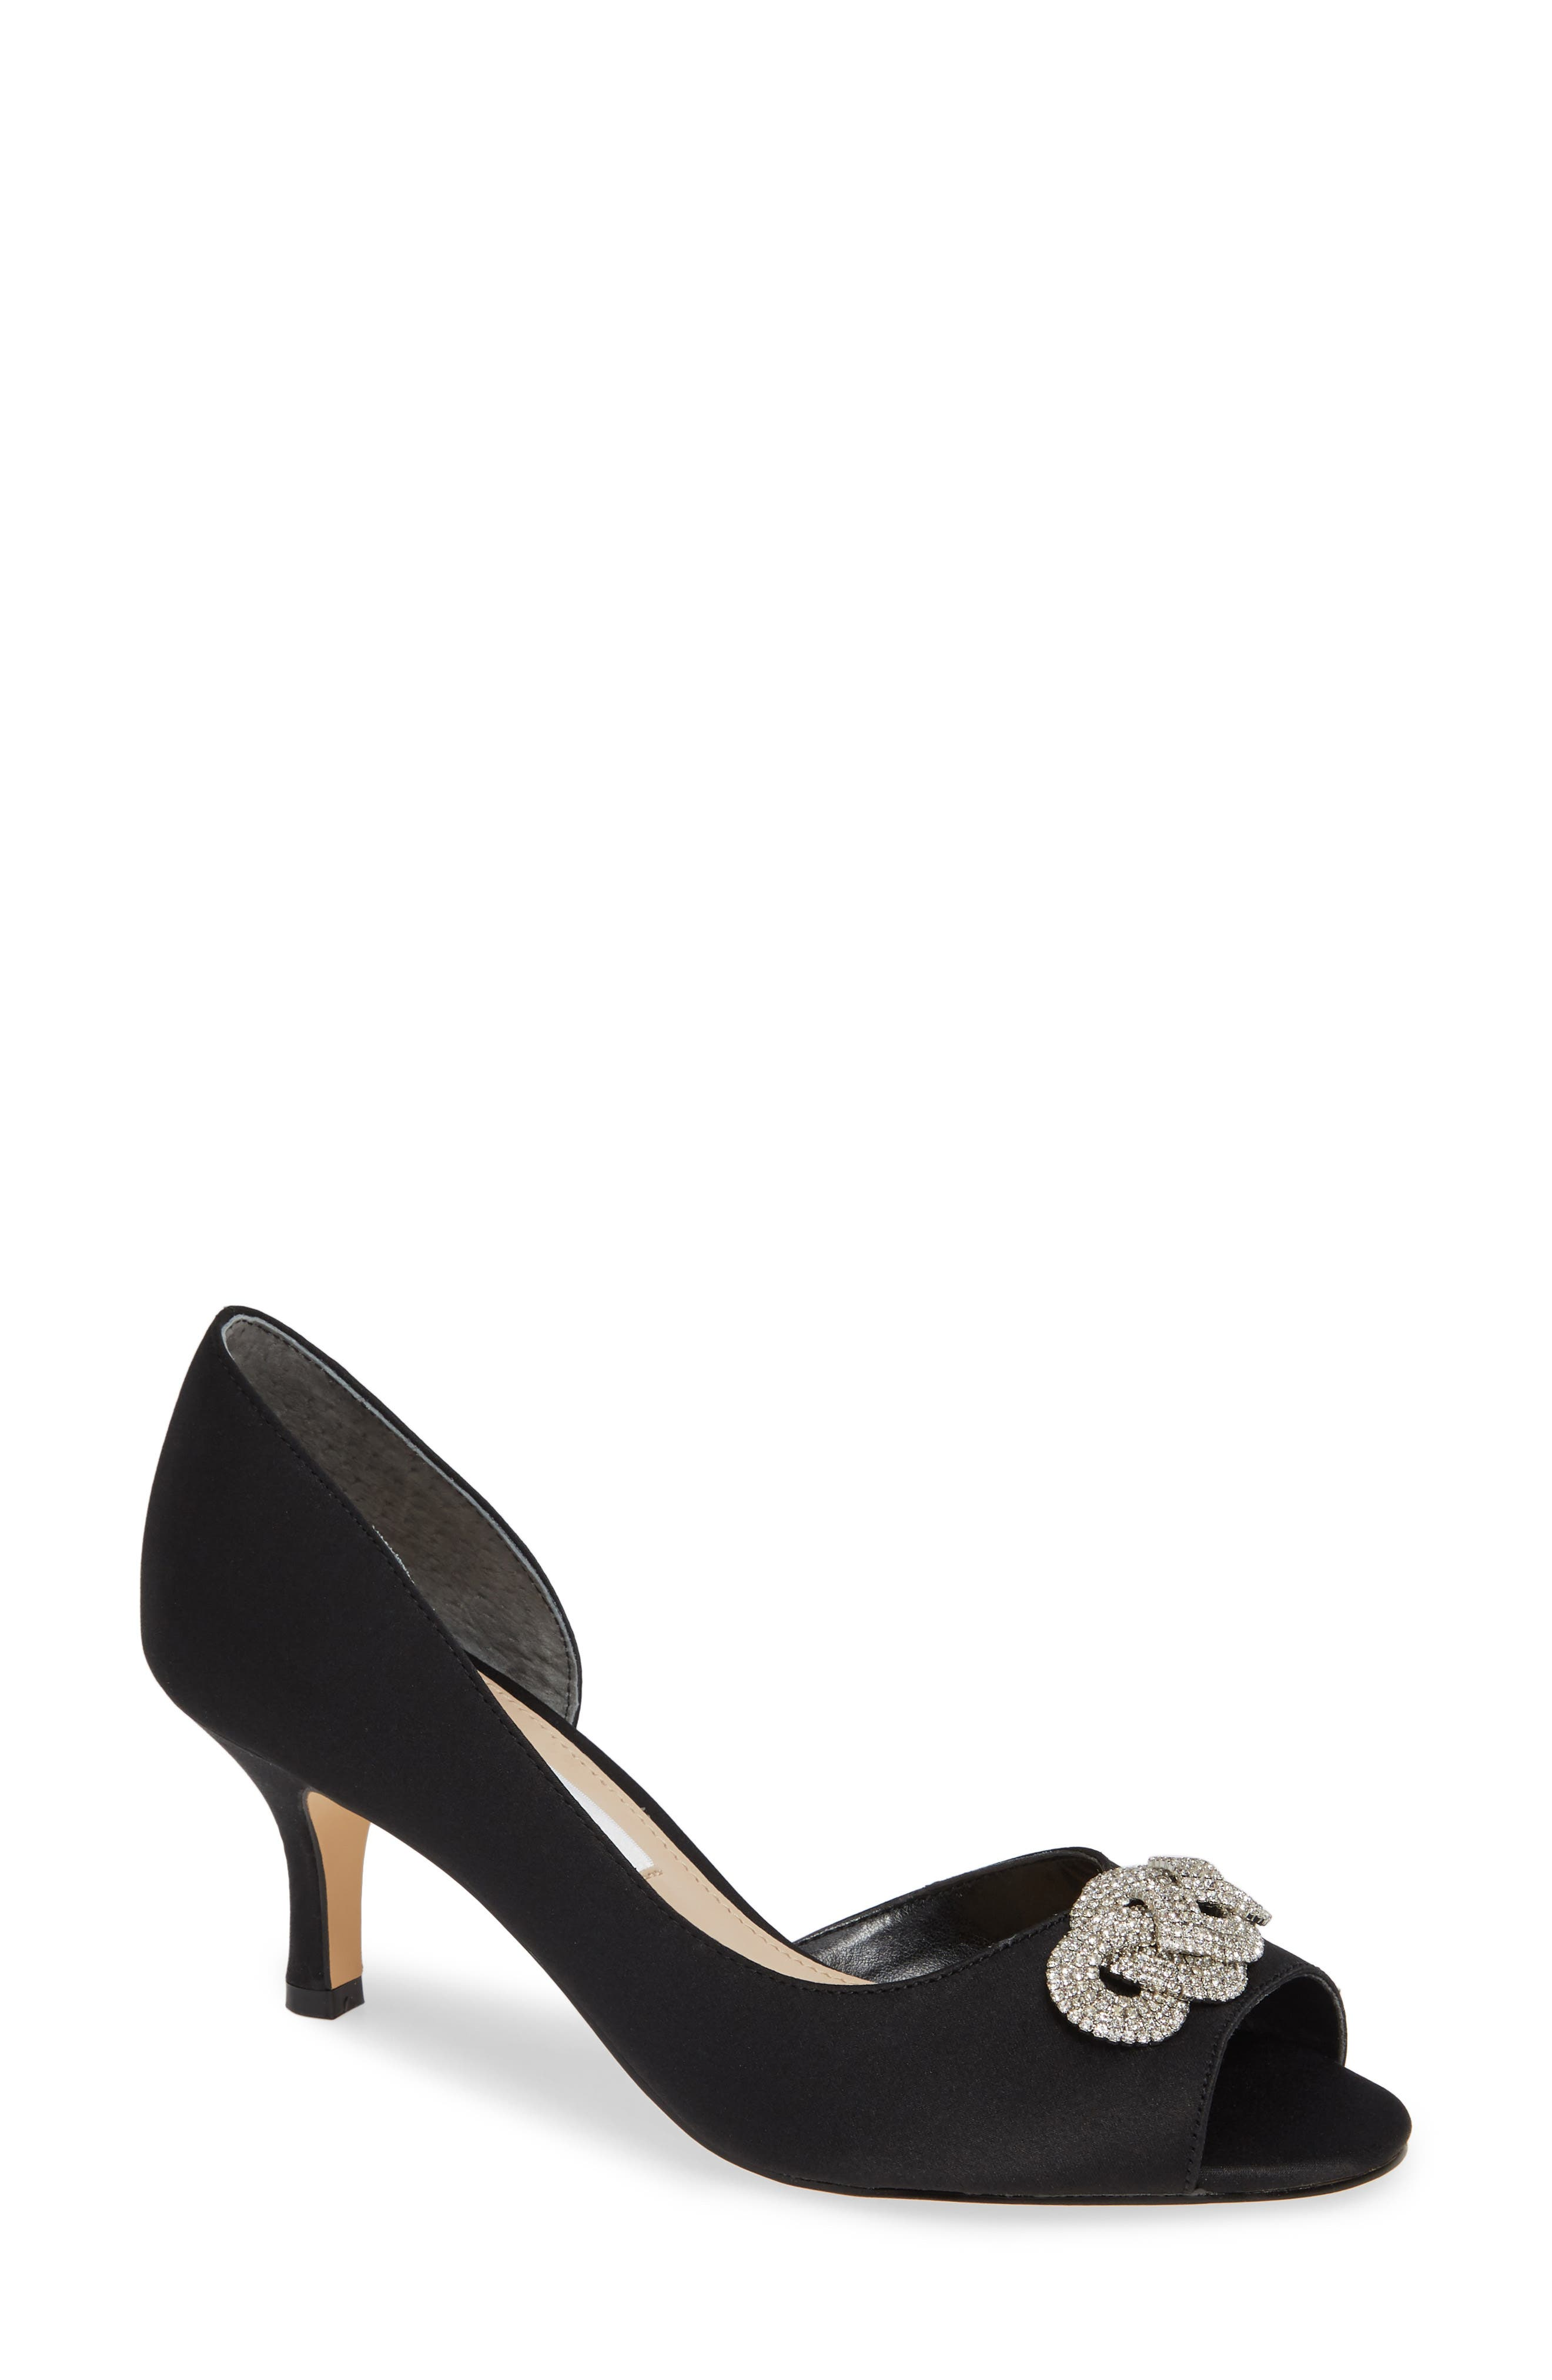 Madolyn Embellished Open Toe Pump,                         Main,                         color, BLACK SATIN